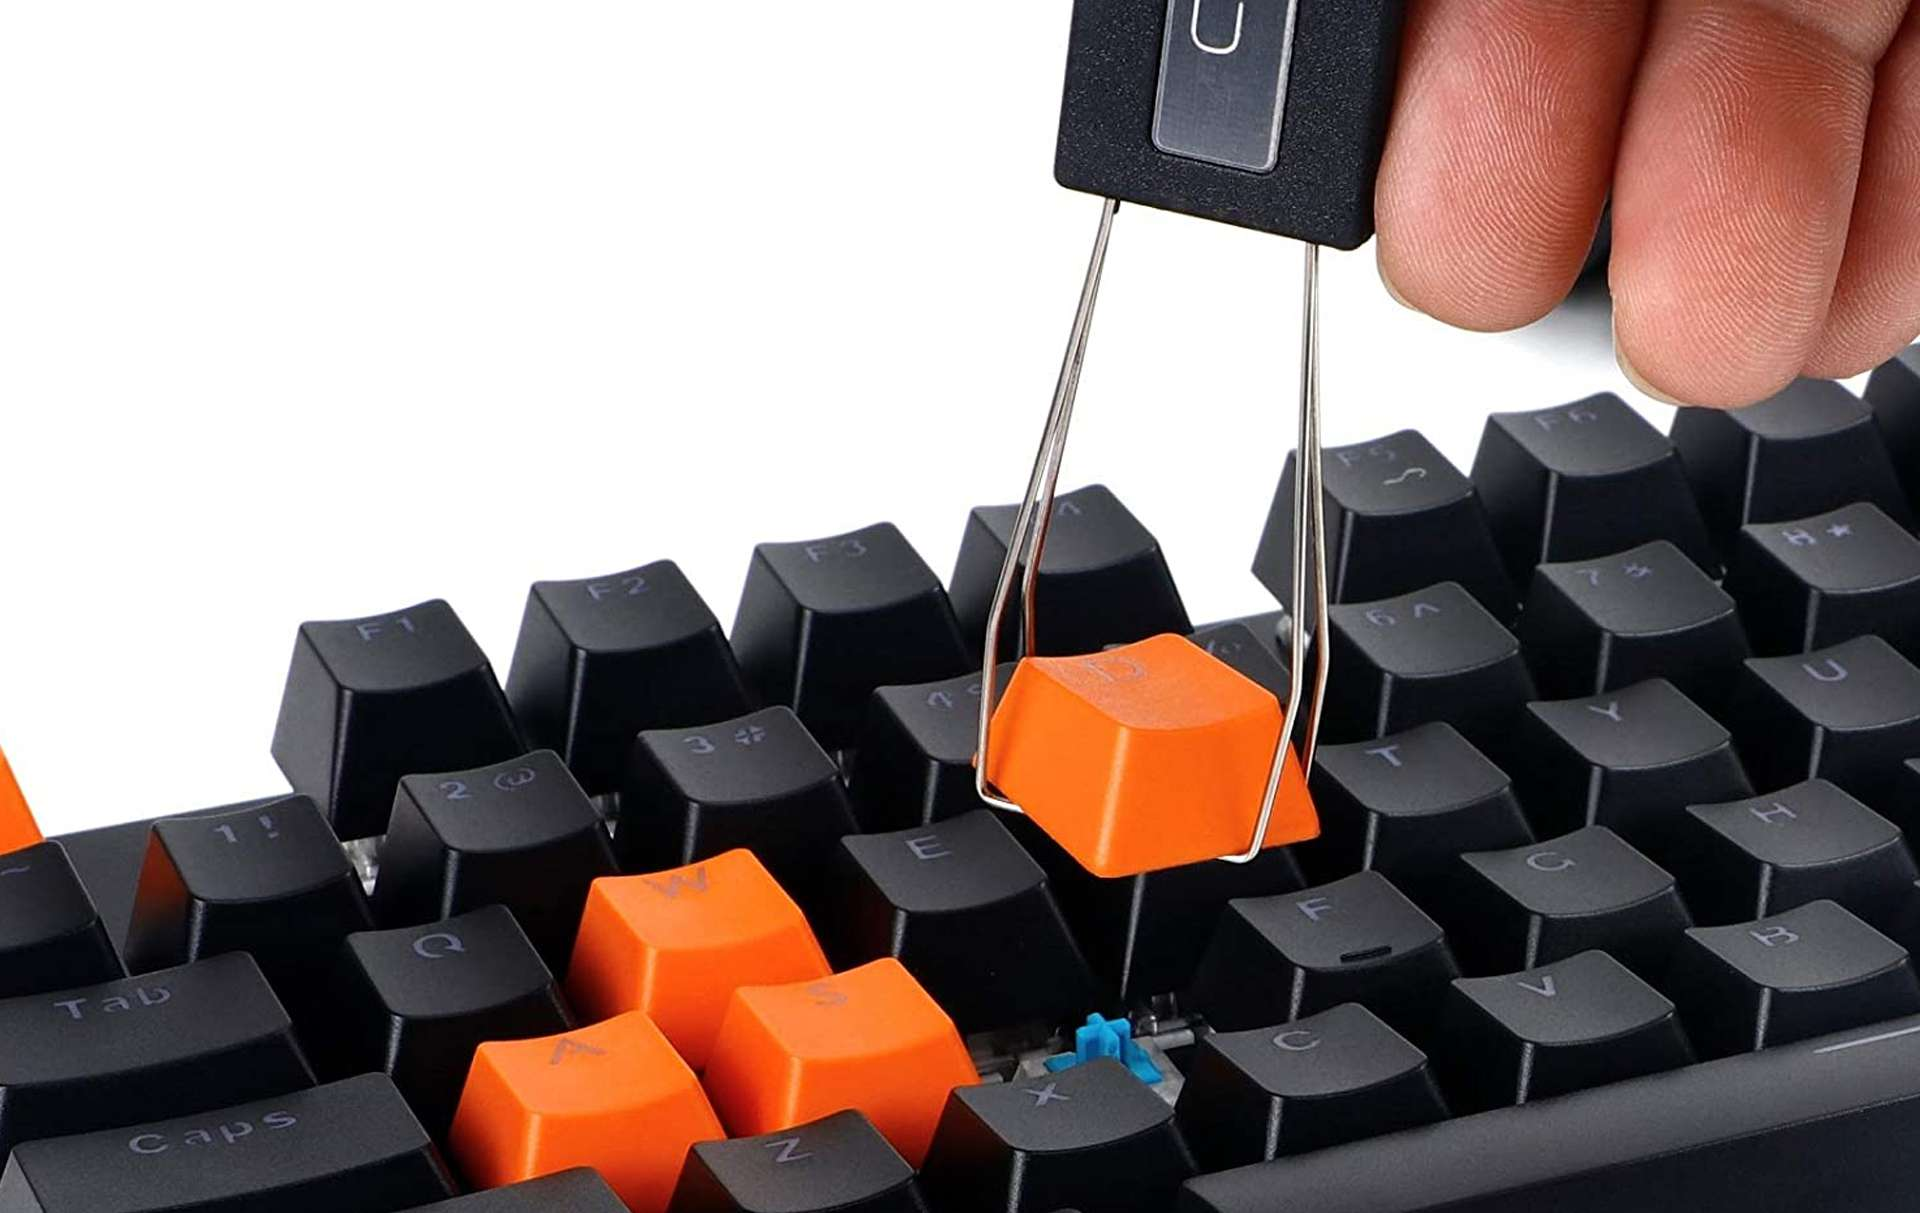 Keyboard keys being removed by a keycap puller tool.